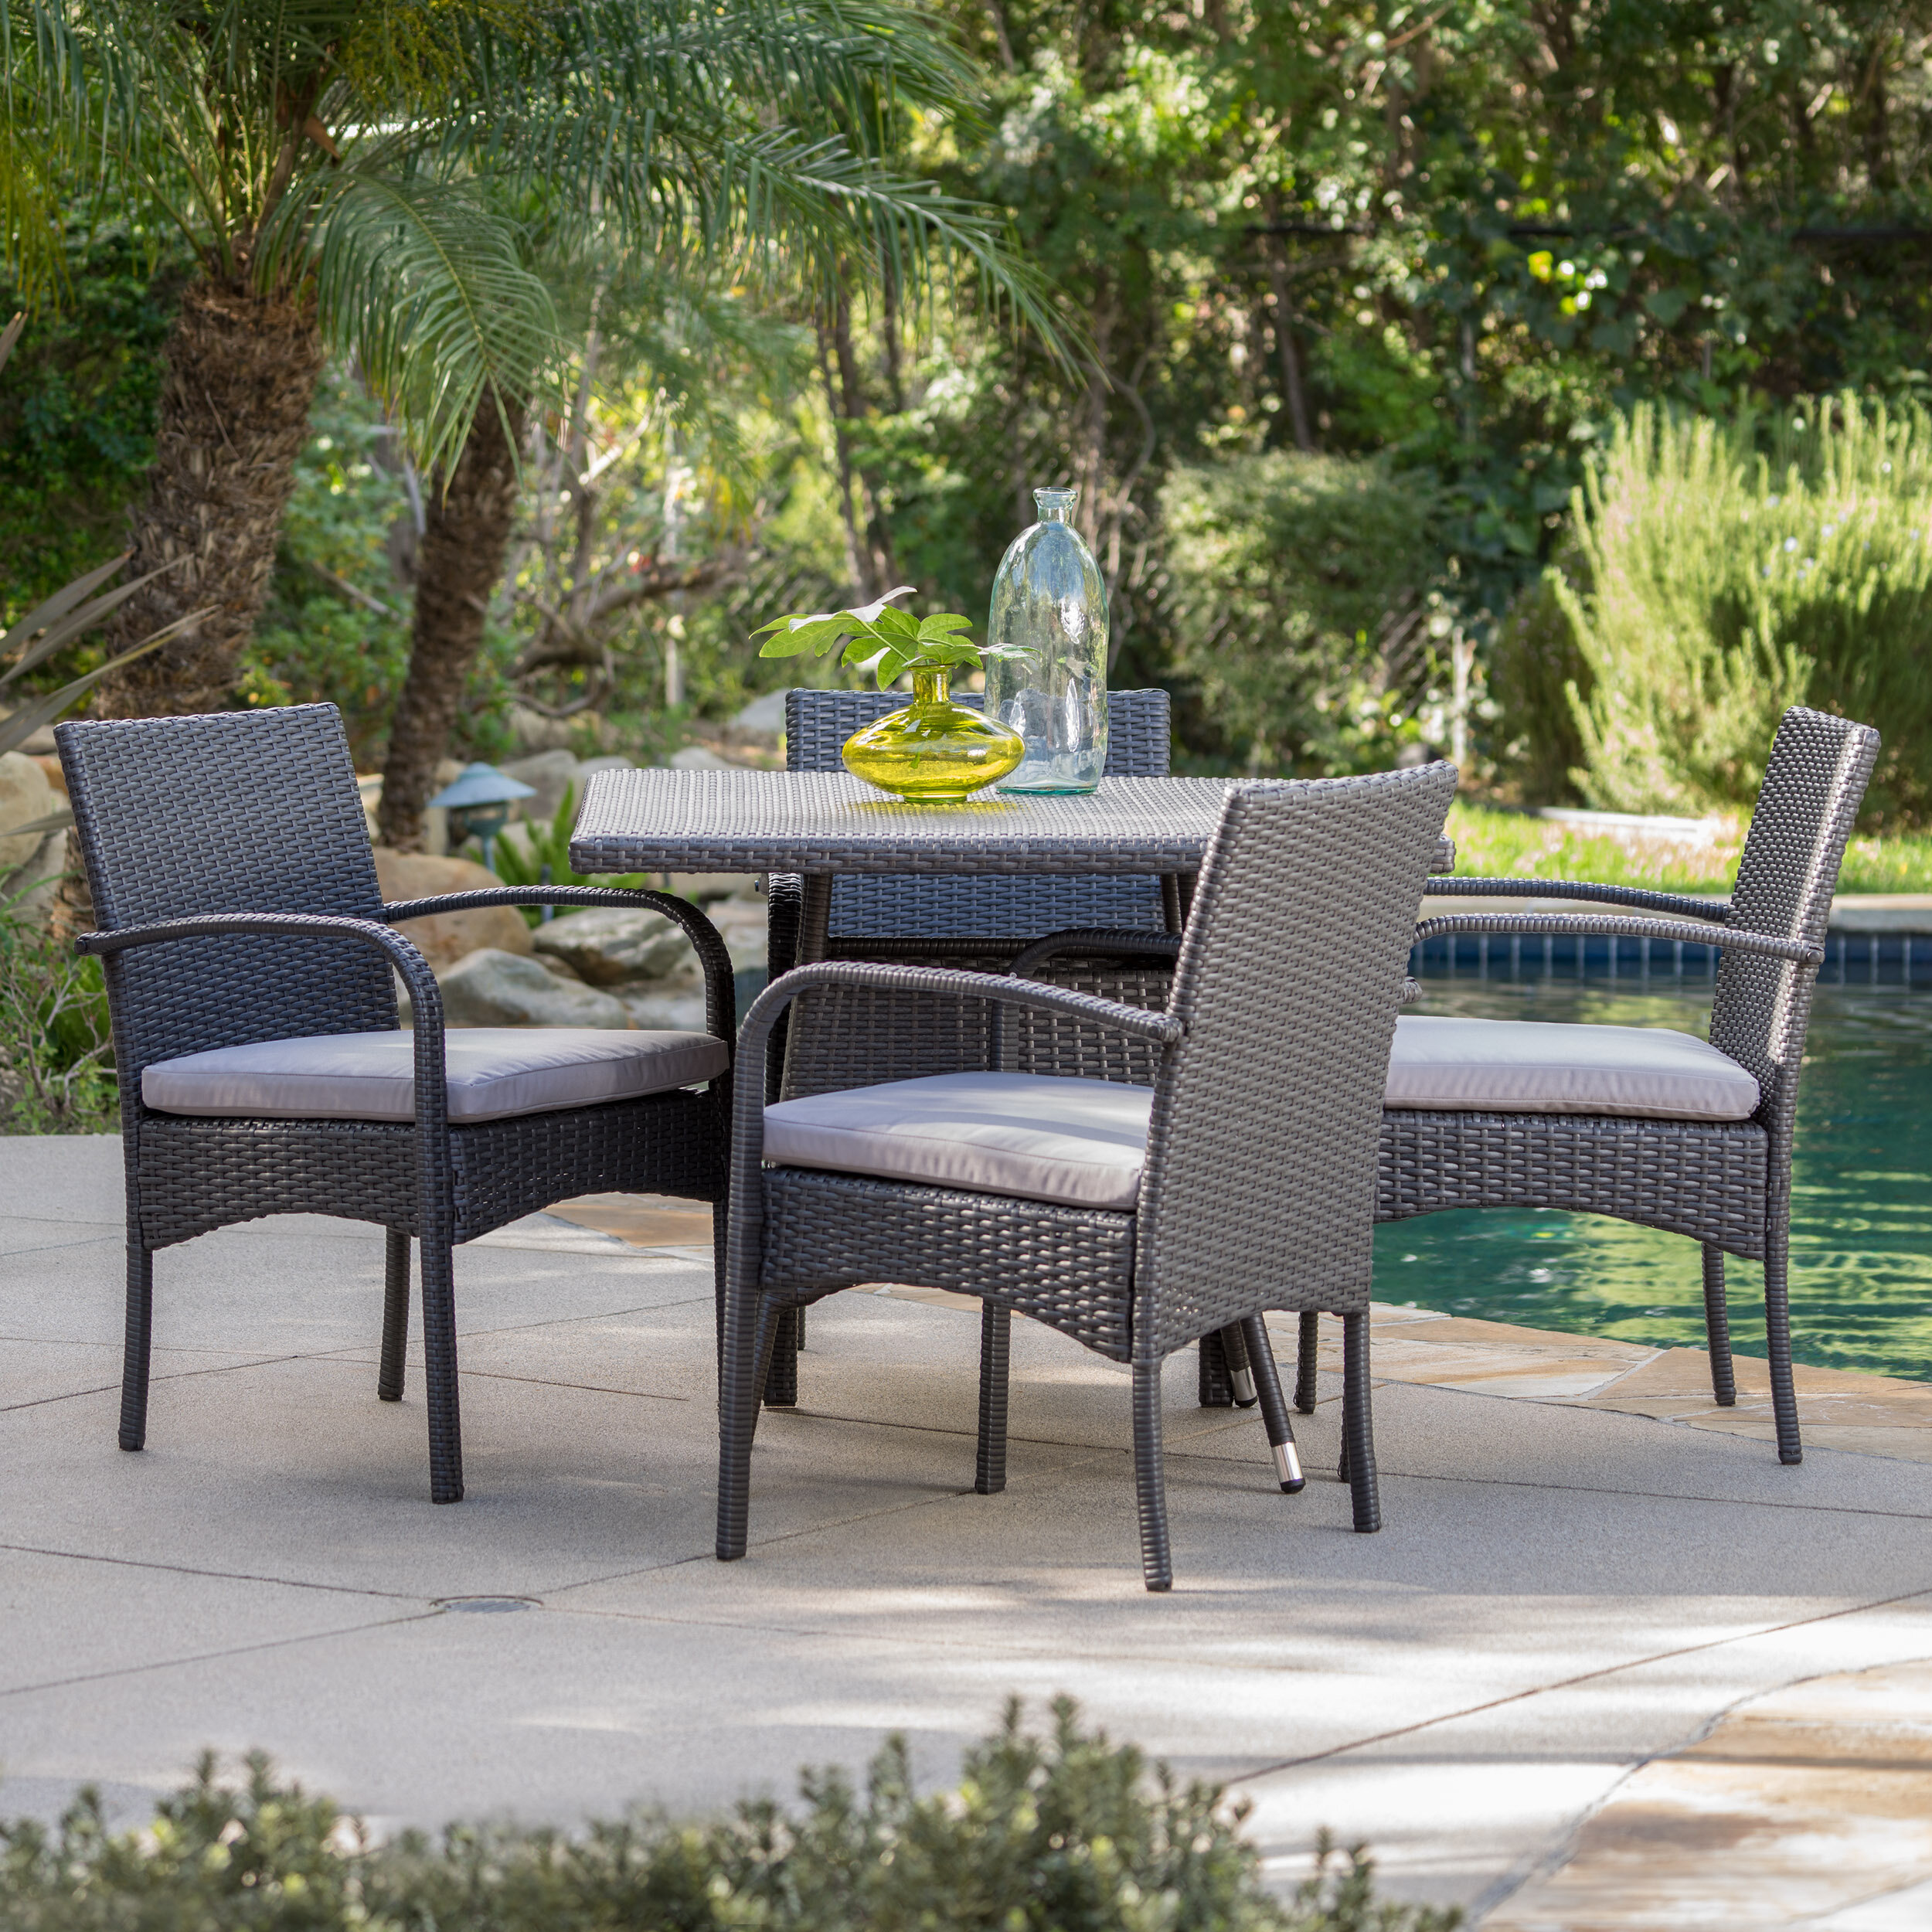 Bay isle home mathiatis 5 piece dining set with cushions reviews wayfair